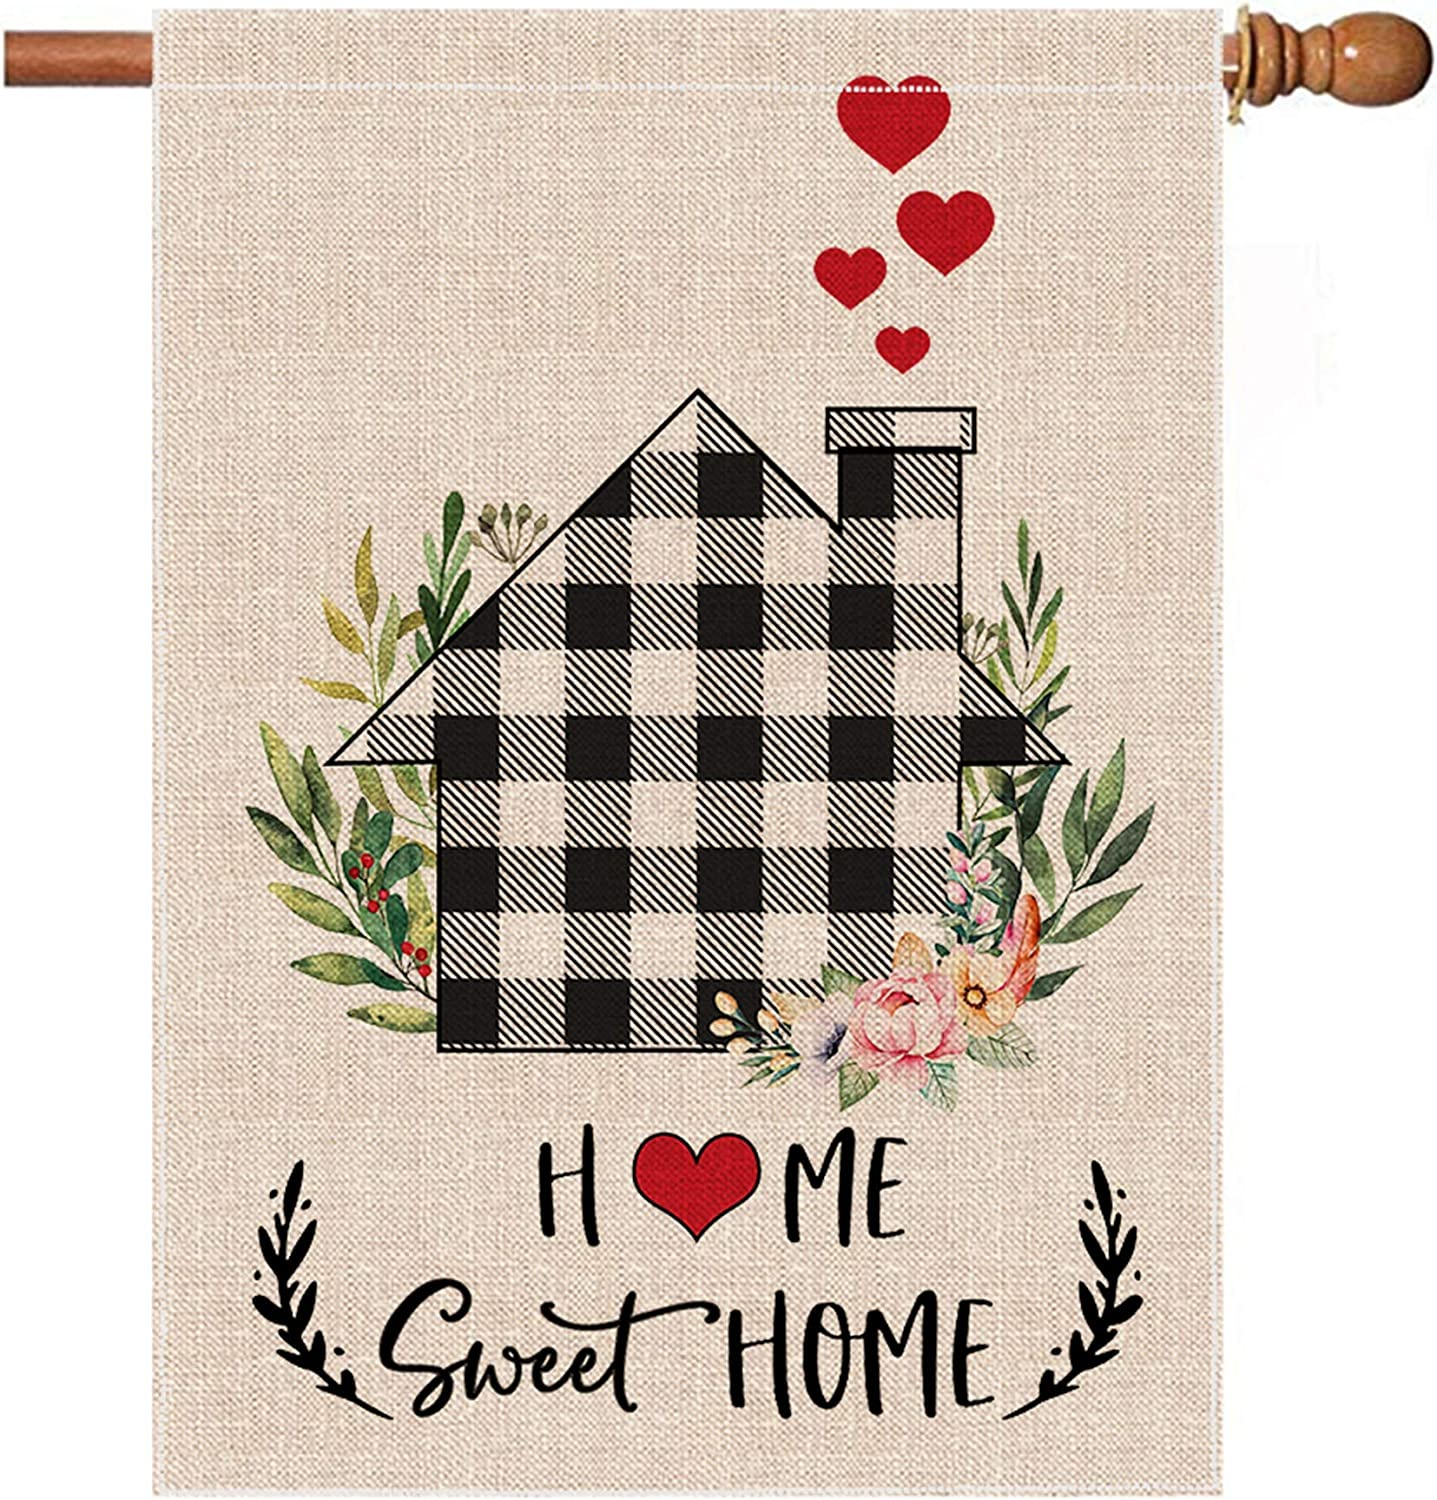 Hexagram Home Sweet Home House Flag, Fall Winter Vertical Double Sided Burlap Black White Buffalo Plaid Check Farmhouse House Flags, Spring Summer Rustic Farmhouse Yard Outdoor Decoration 28x40 Inch